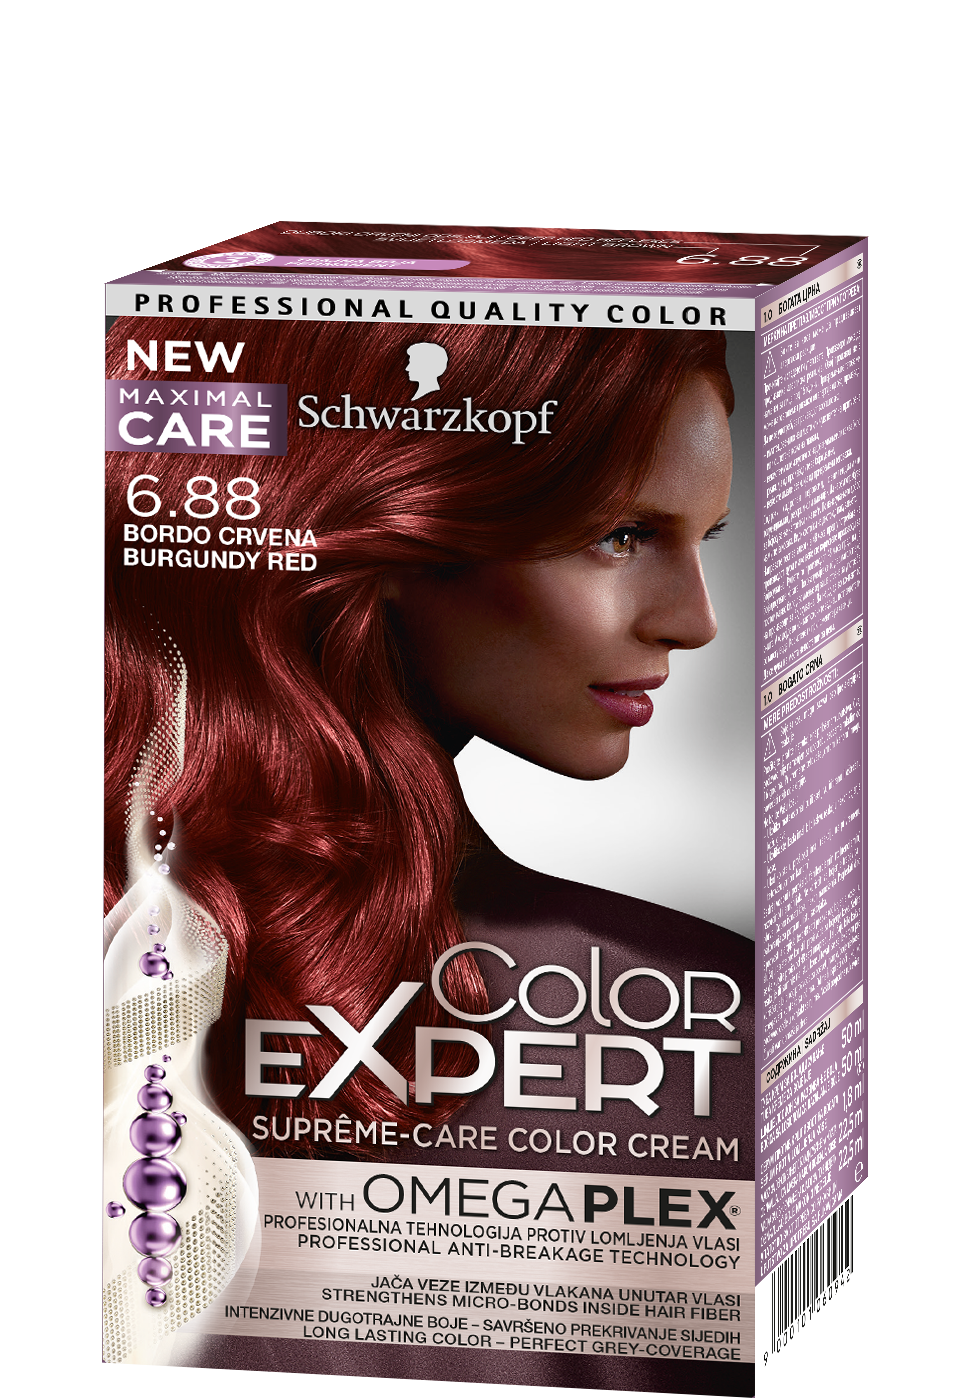 Color Expert Intensiv-Plege Color Creme 10-1 Ultra-kühles Hellblond